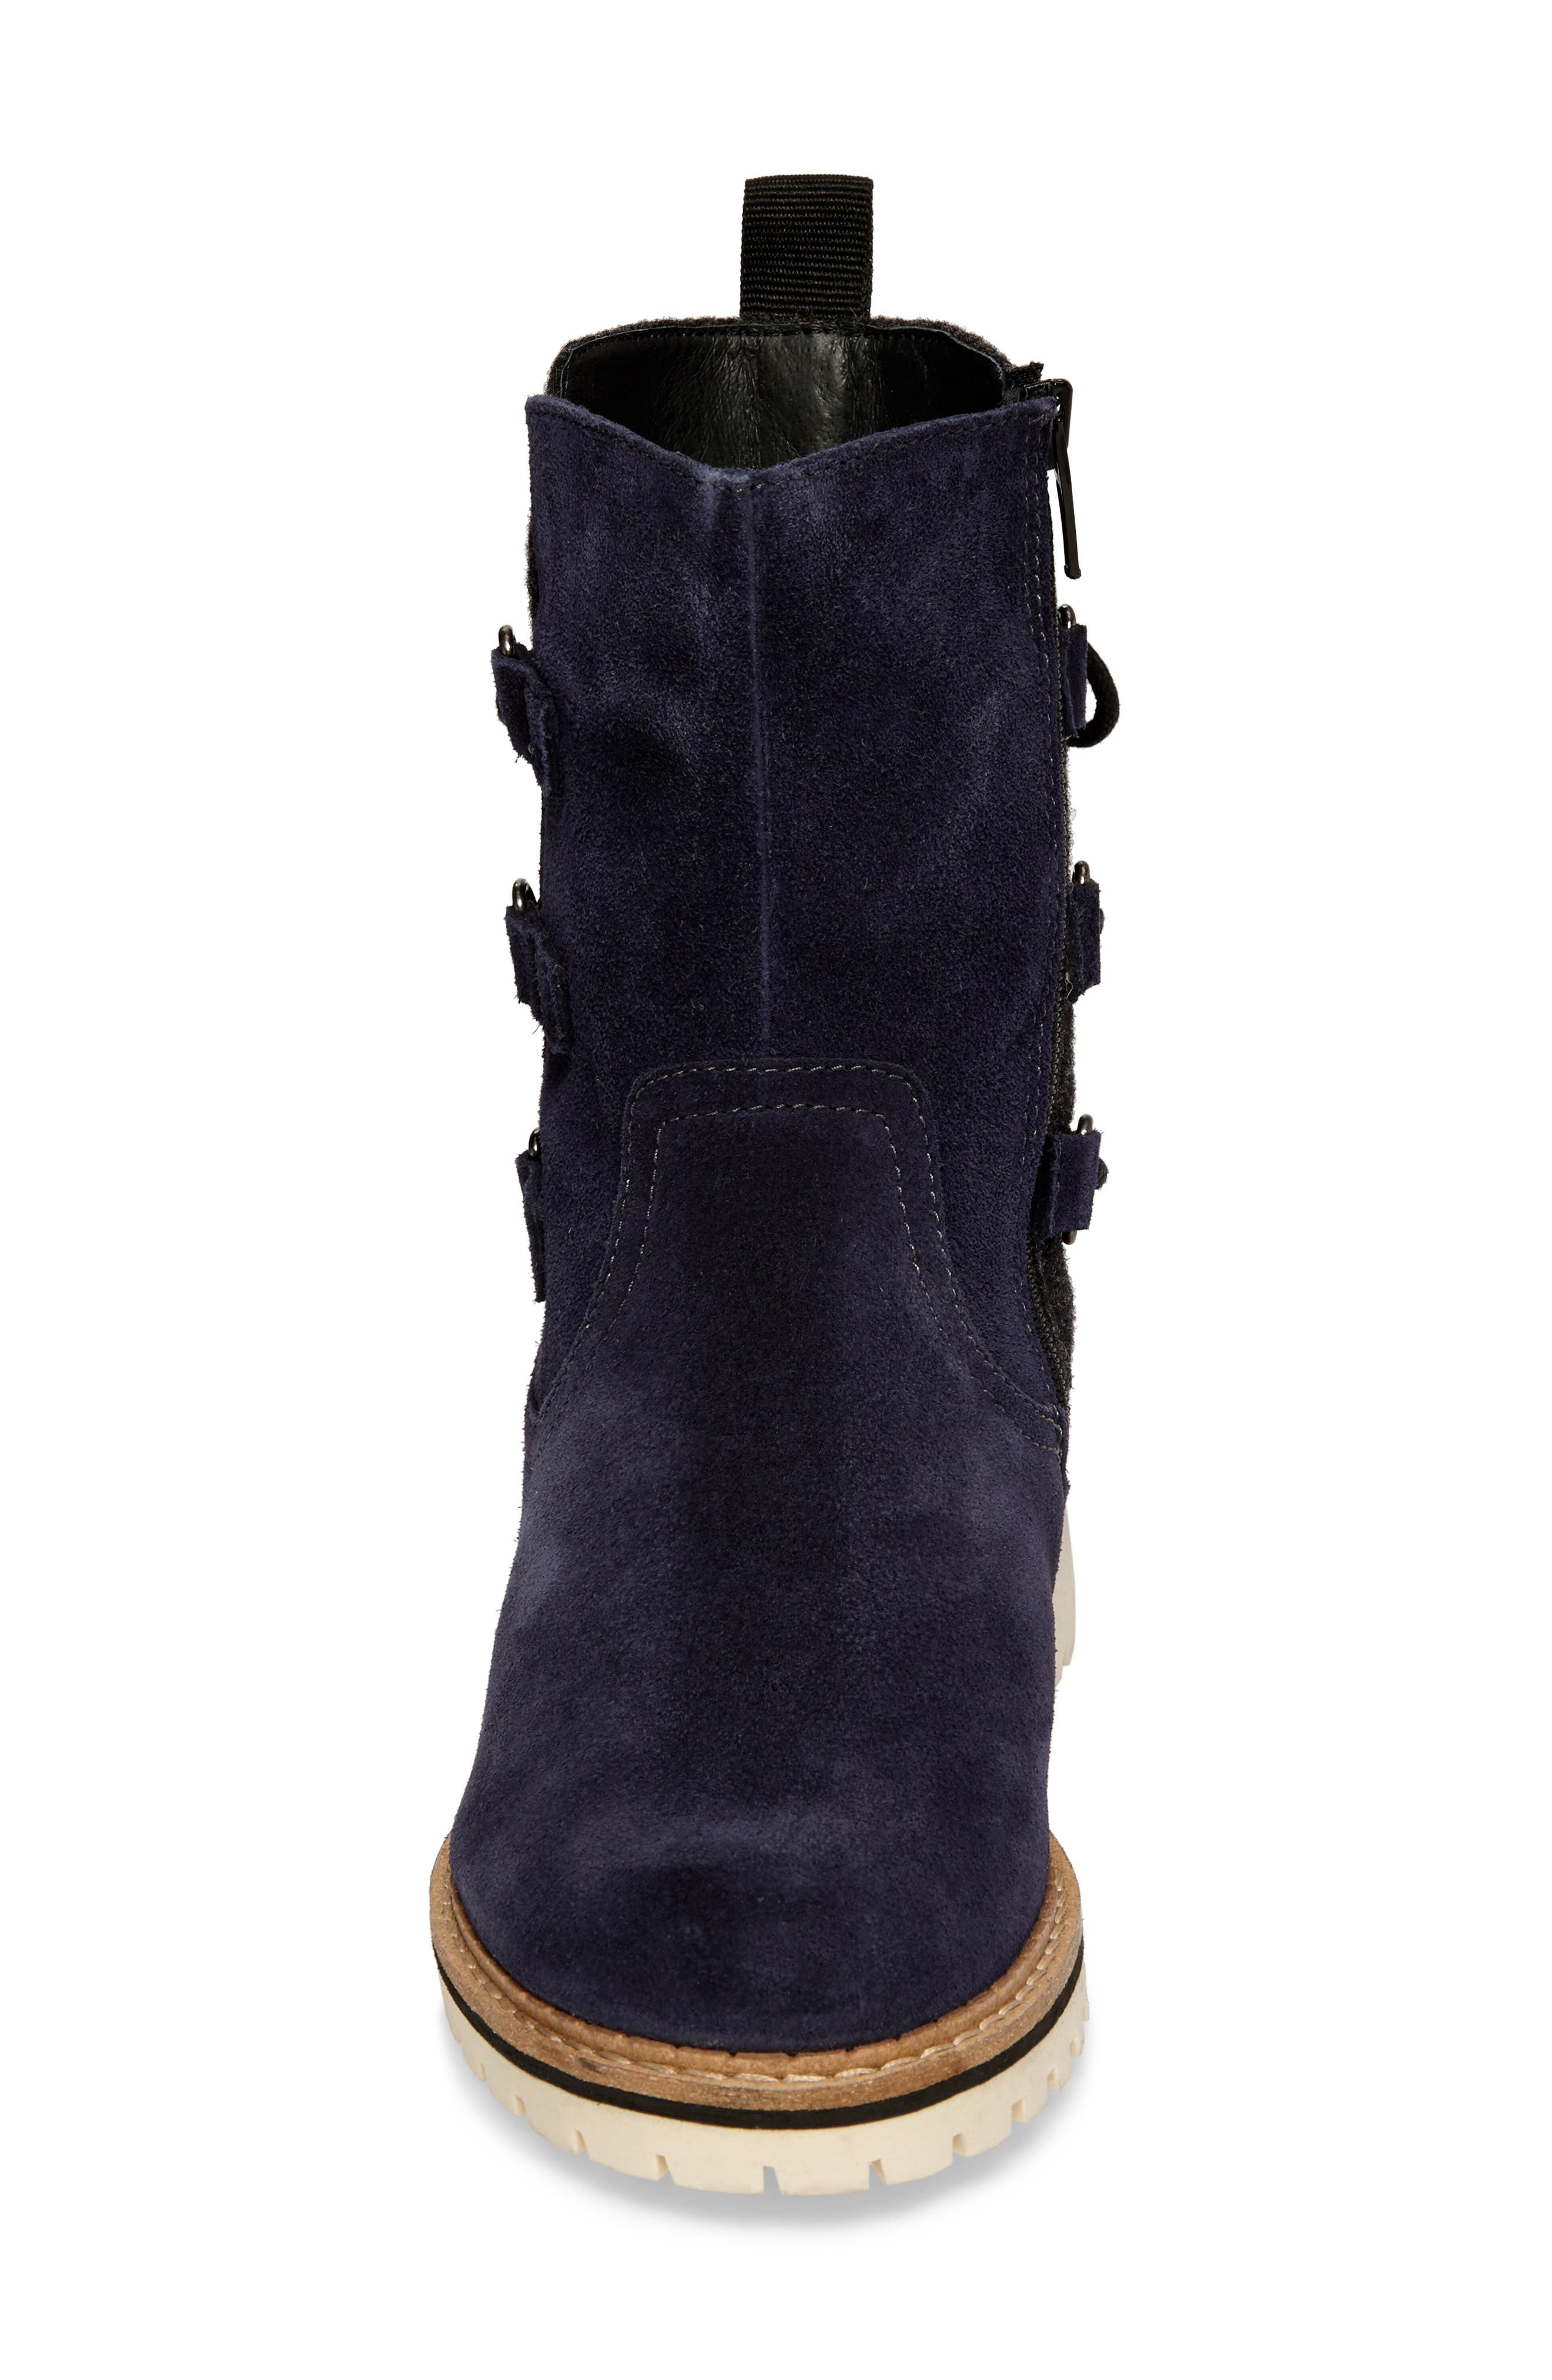 Cascade Waterproof Boot,                             Alternate thumbnail 8, color,